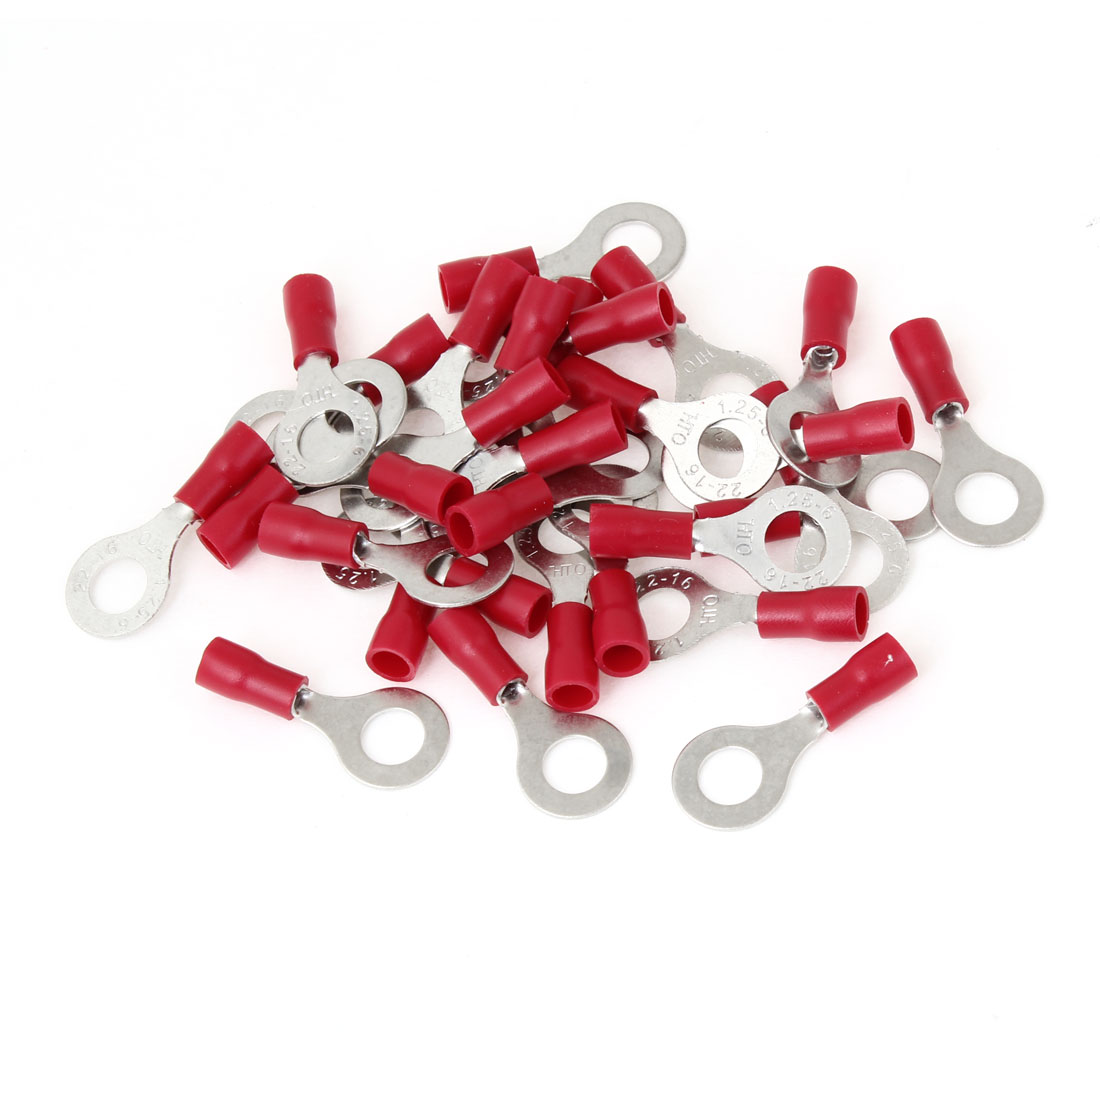 RV1.25-6 Red PVC Sleeve Insulated Ring Tongue Terminals 30 Pcs